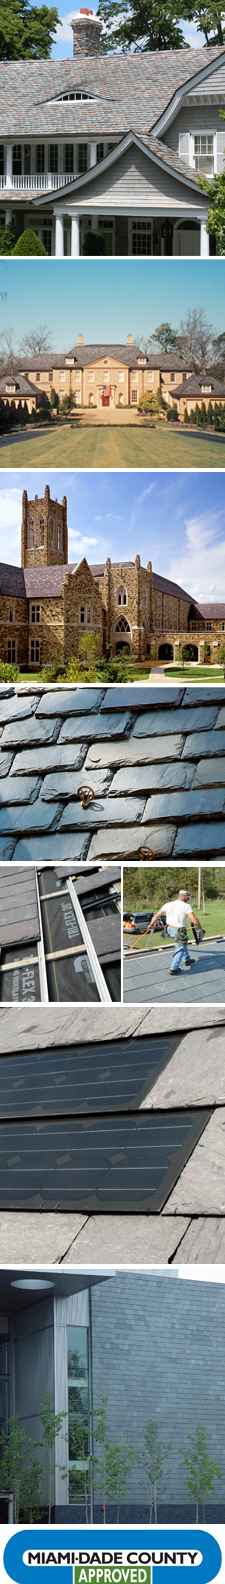 Nu-lok™ Roofing Systems Featuring Greenstone Slate®